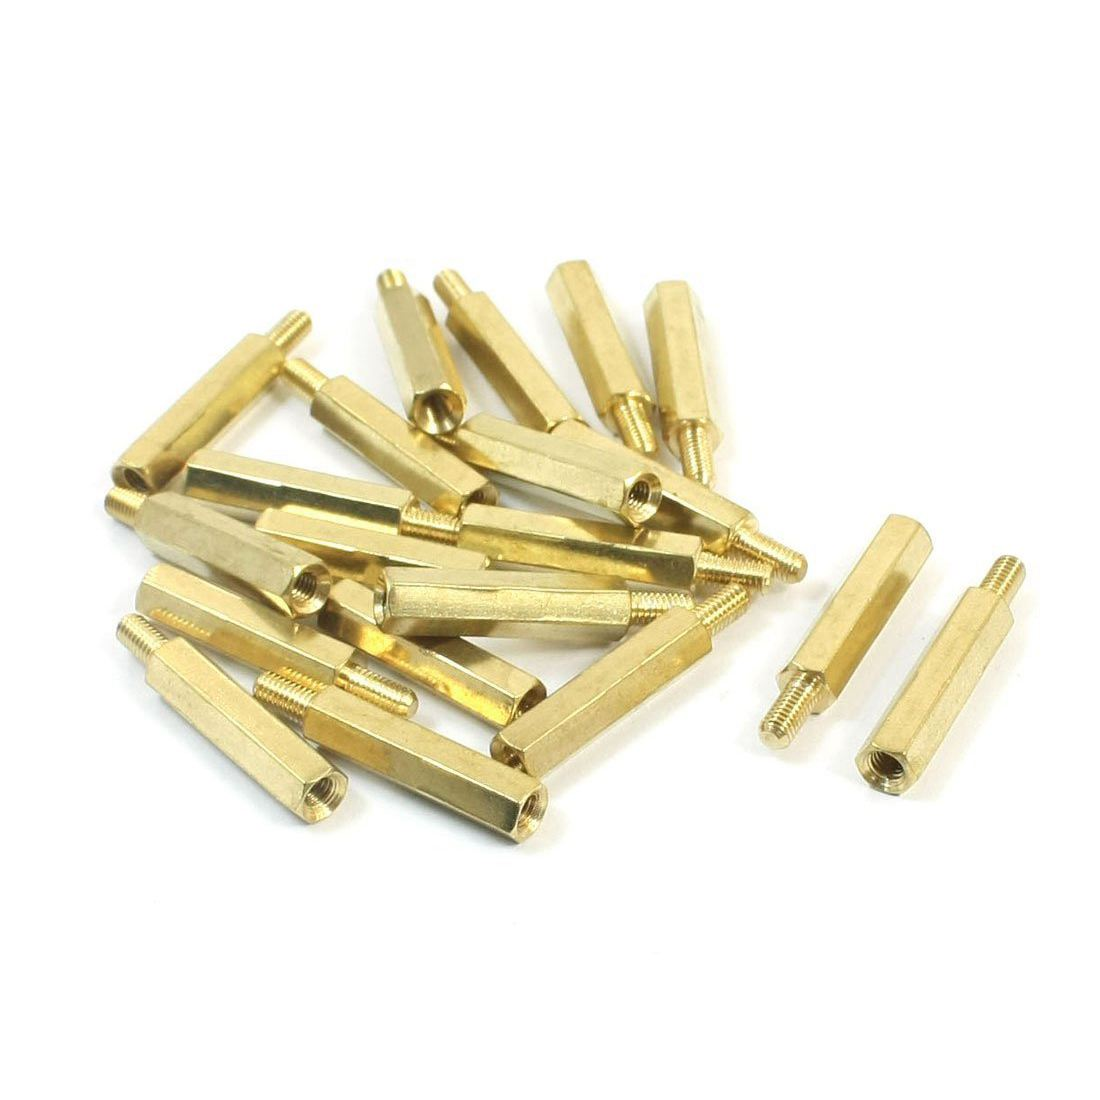 Wholesales 20 Pcs <font><b>M3</b></font> x <font><b>20mm</b></font> x 26mm Male to Female PCB Hexagon Nut <font><b>Standoff</b></font> Spacer image